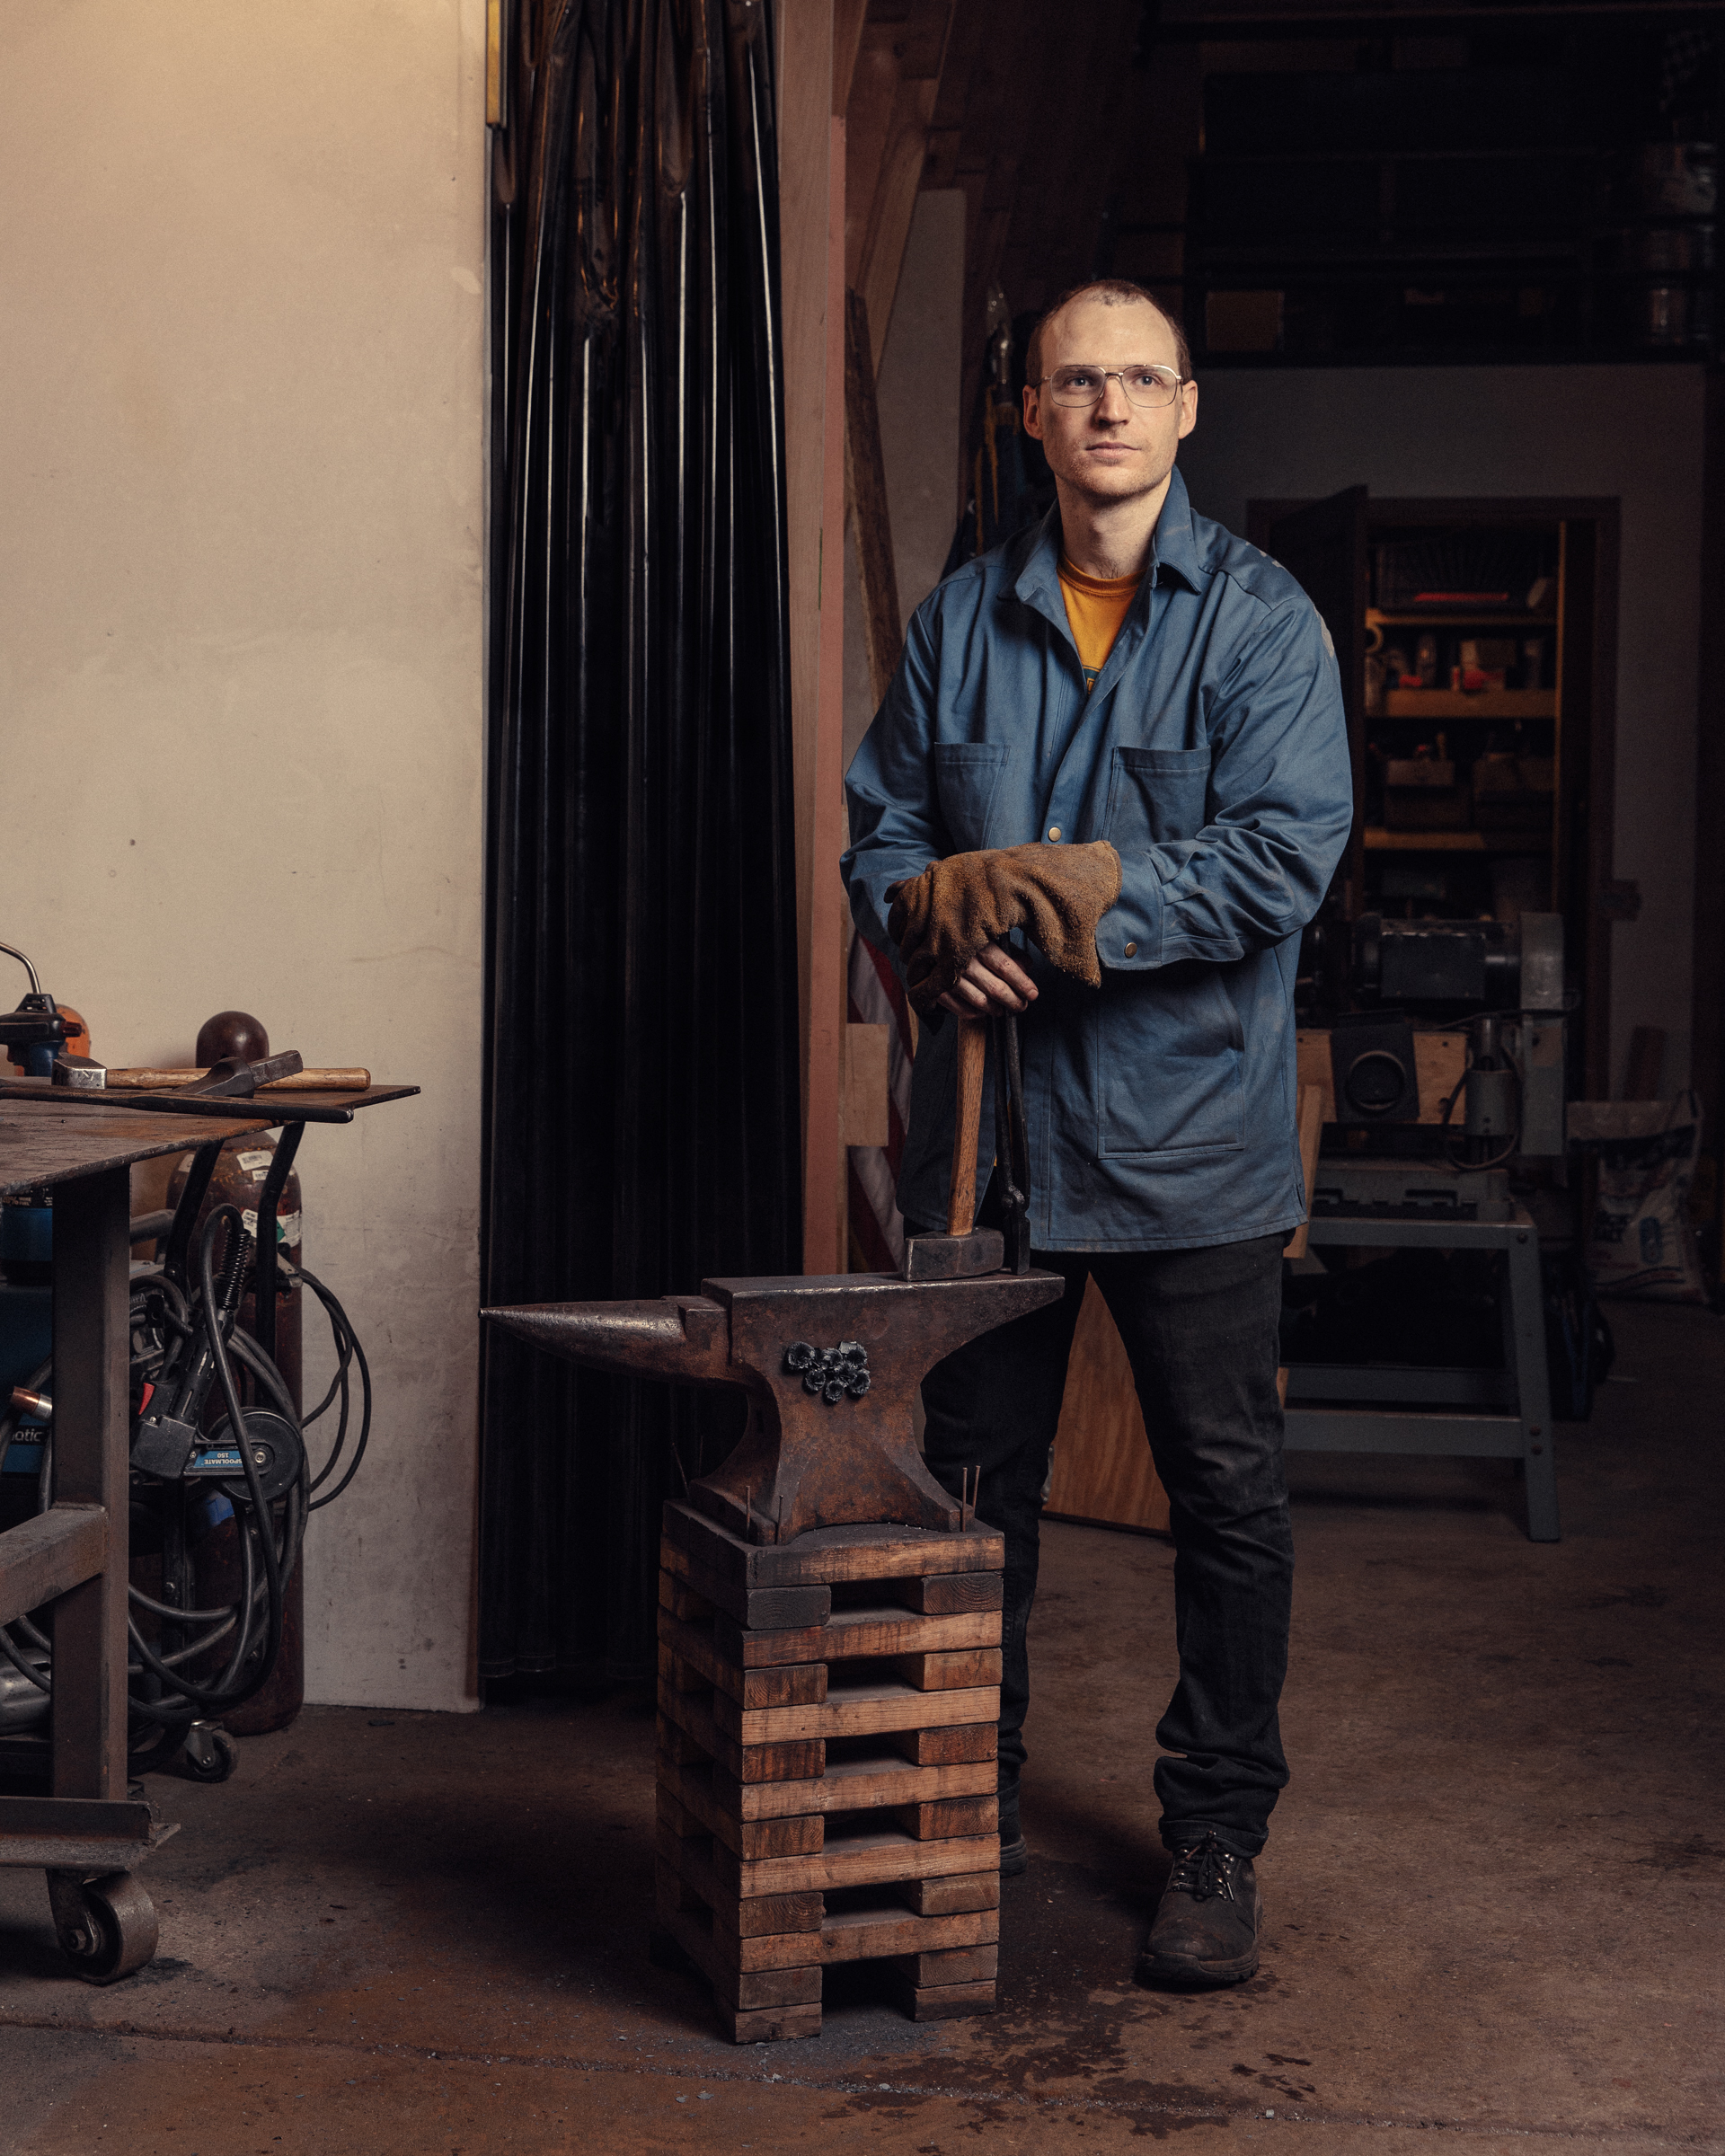 - Will Griffin was born on Bainbridge Island, Washington. He has spent the last decade cooking professionally in NYC and studying the beauty and functionality of handmade kitchen knives.He forges his blades by hand and crafts his knives one by one from superlative materials in Red Hook, Brooklyn